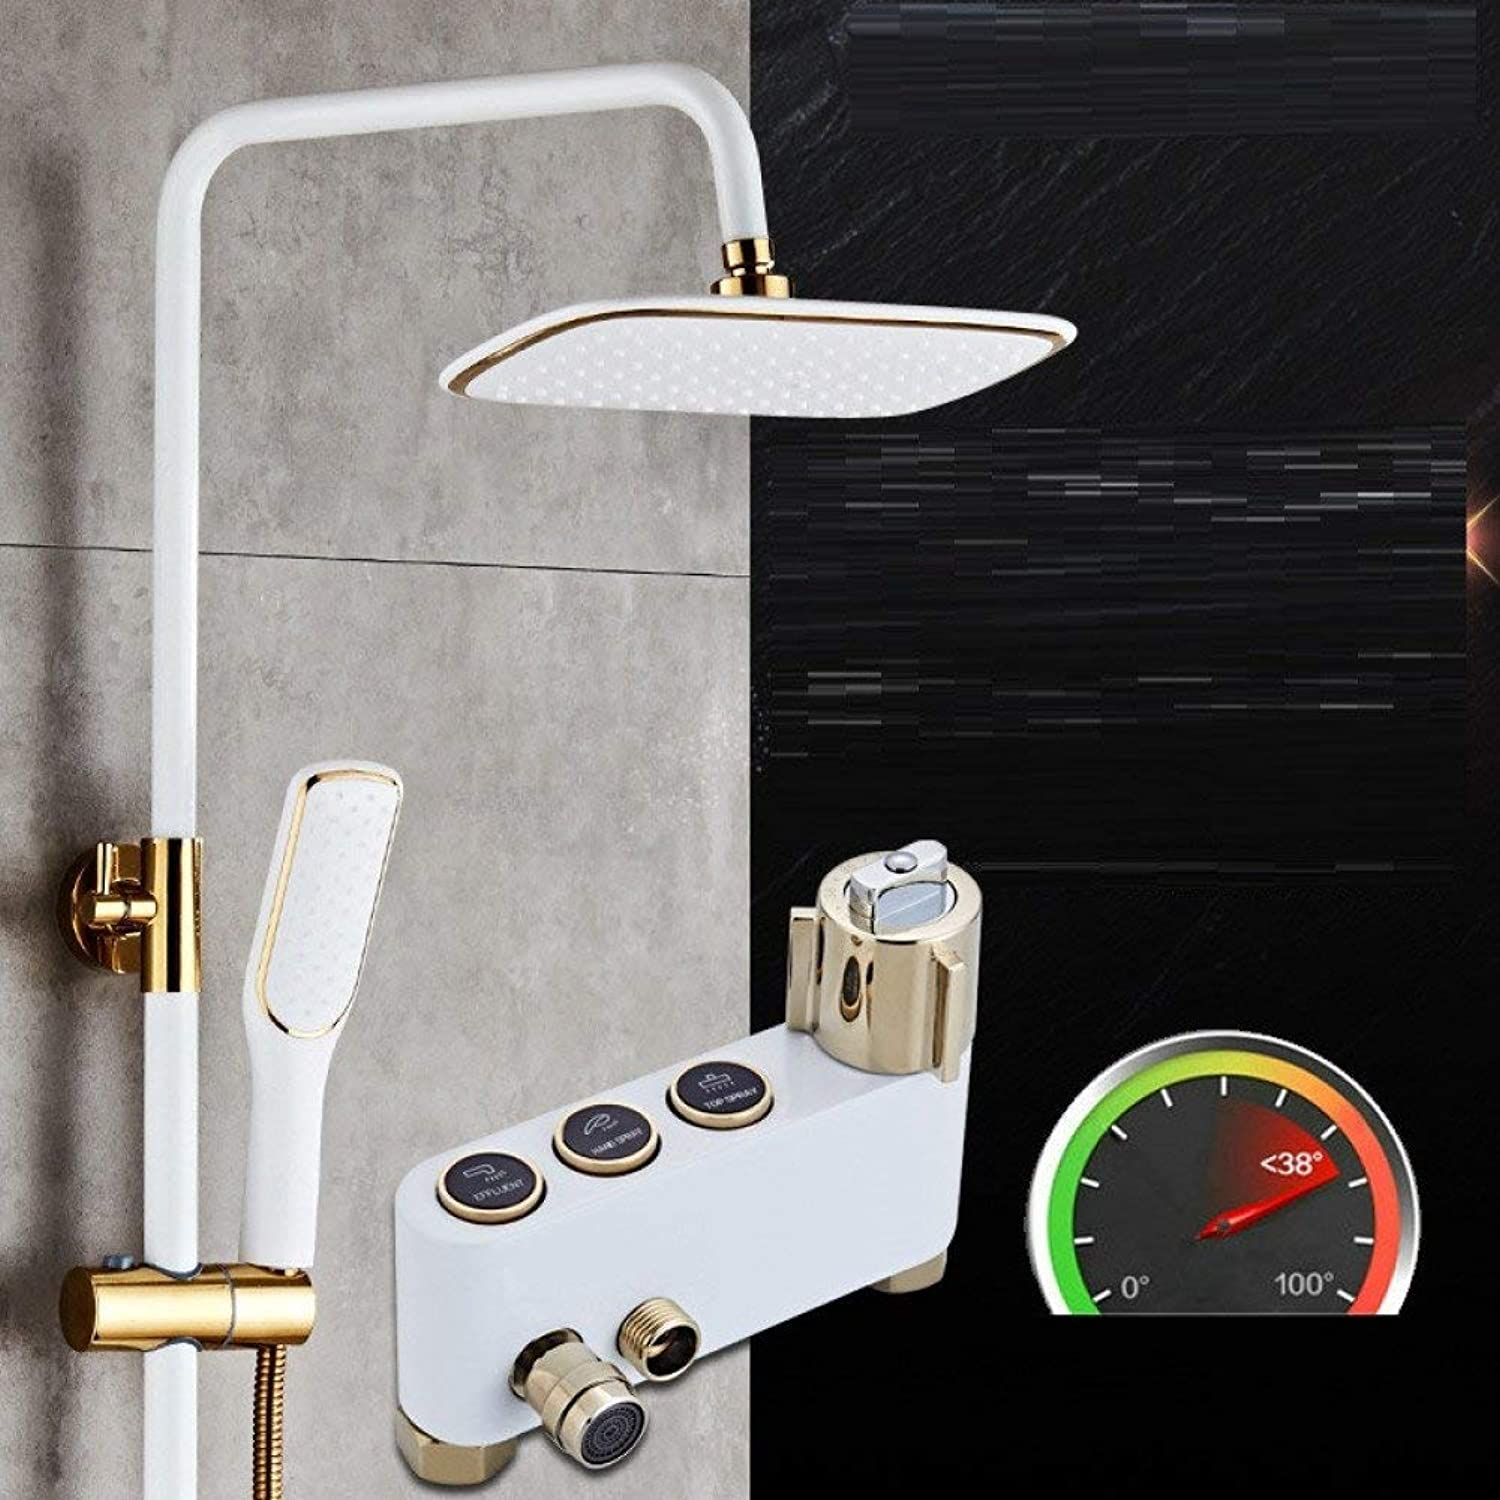 Shower Cooking Paint White Circle Button Constant Temperature Third Valve in Copper End Shower Shower Shower with Hand